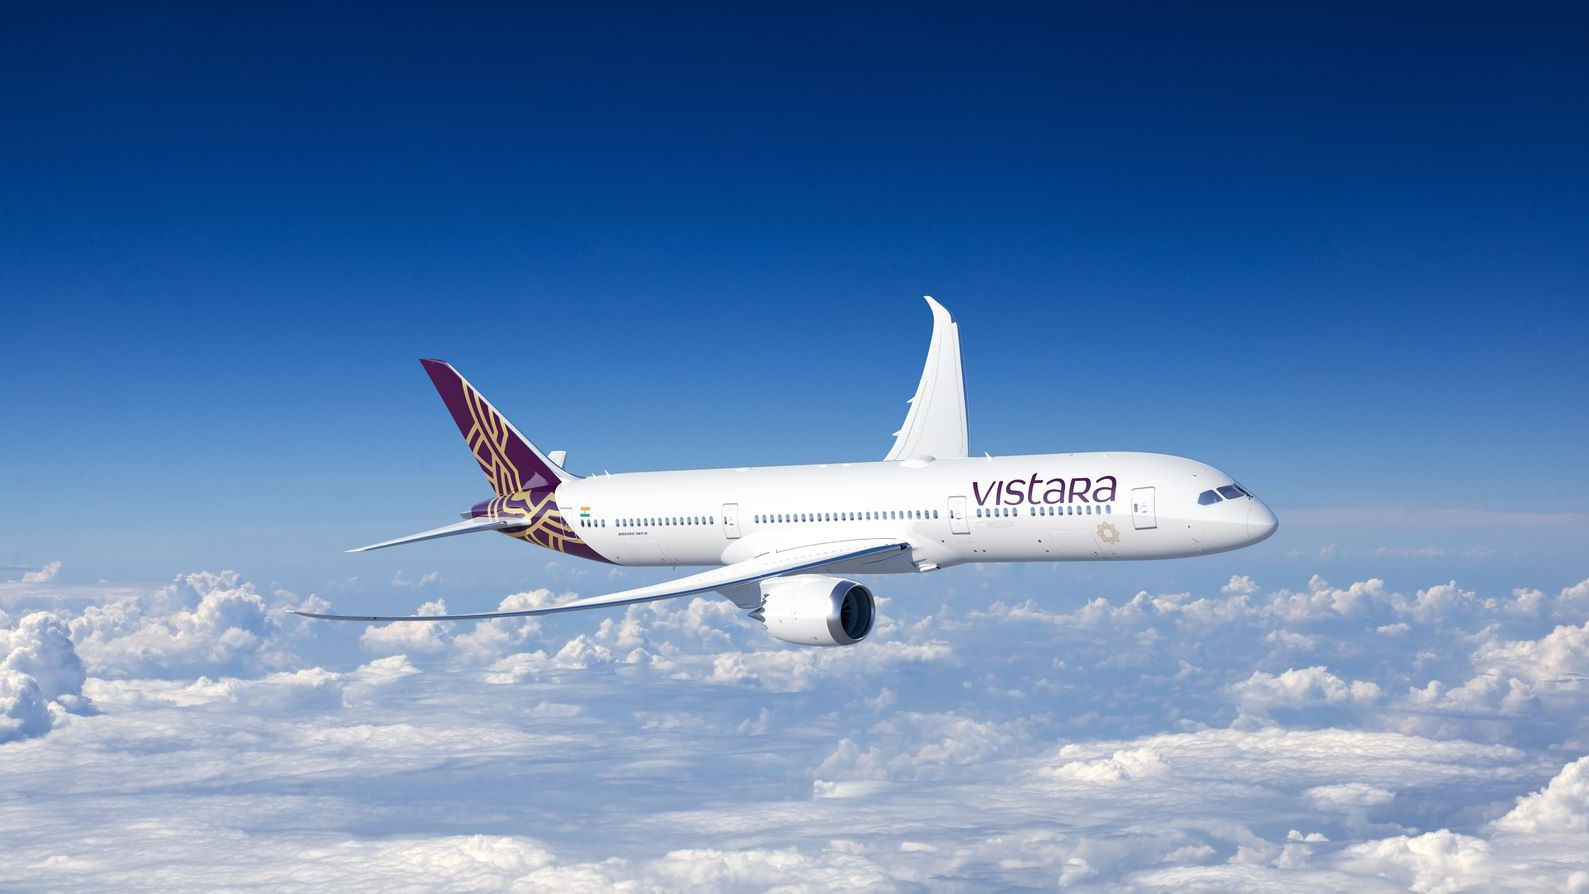 Component support for Vistara's Boeing 787 fleet